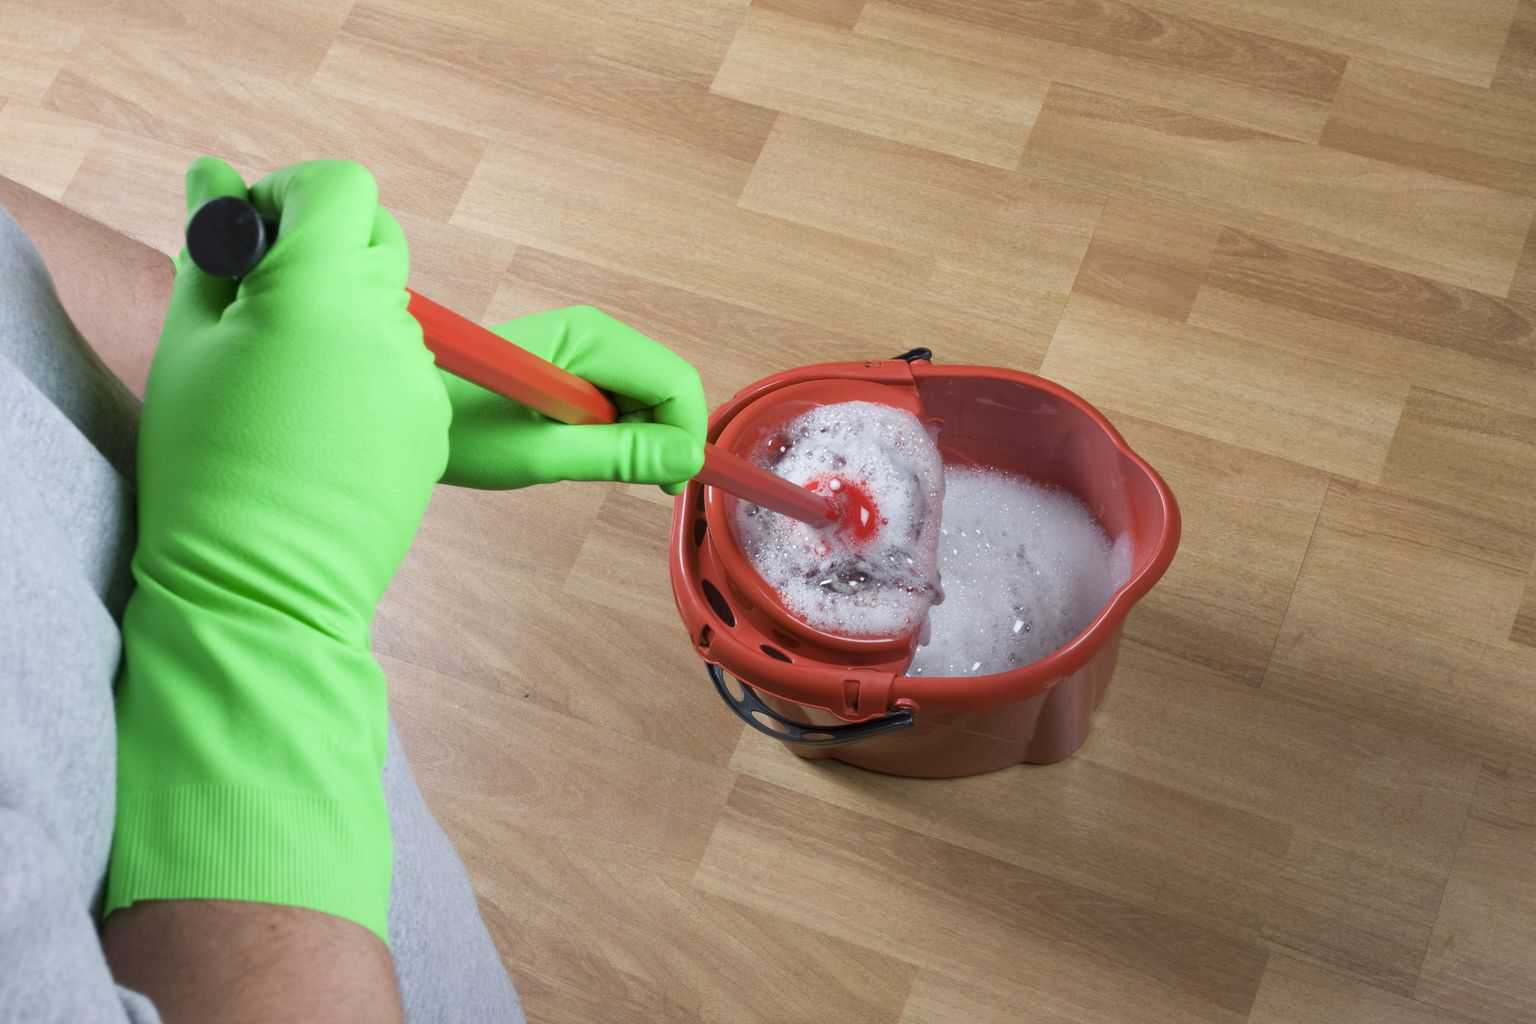 you do not require an expensive mop as a simple model will be adequate for cleaning a laminate floor